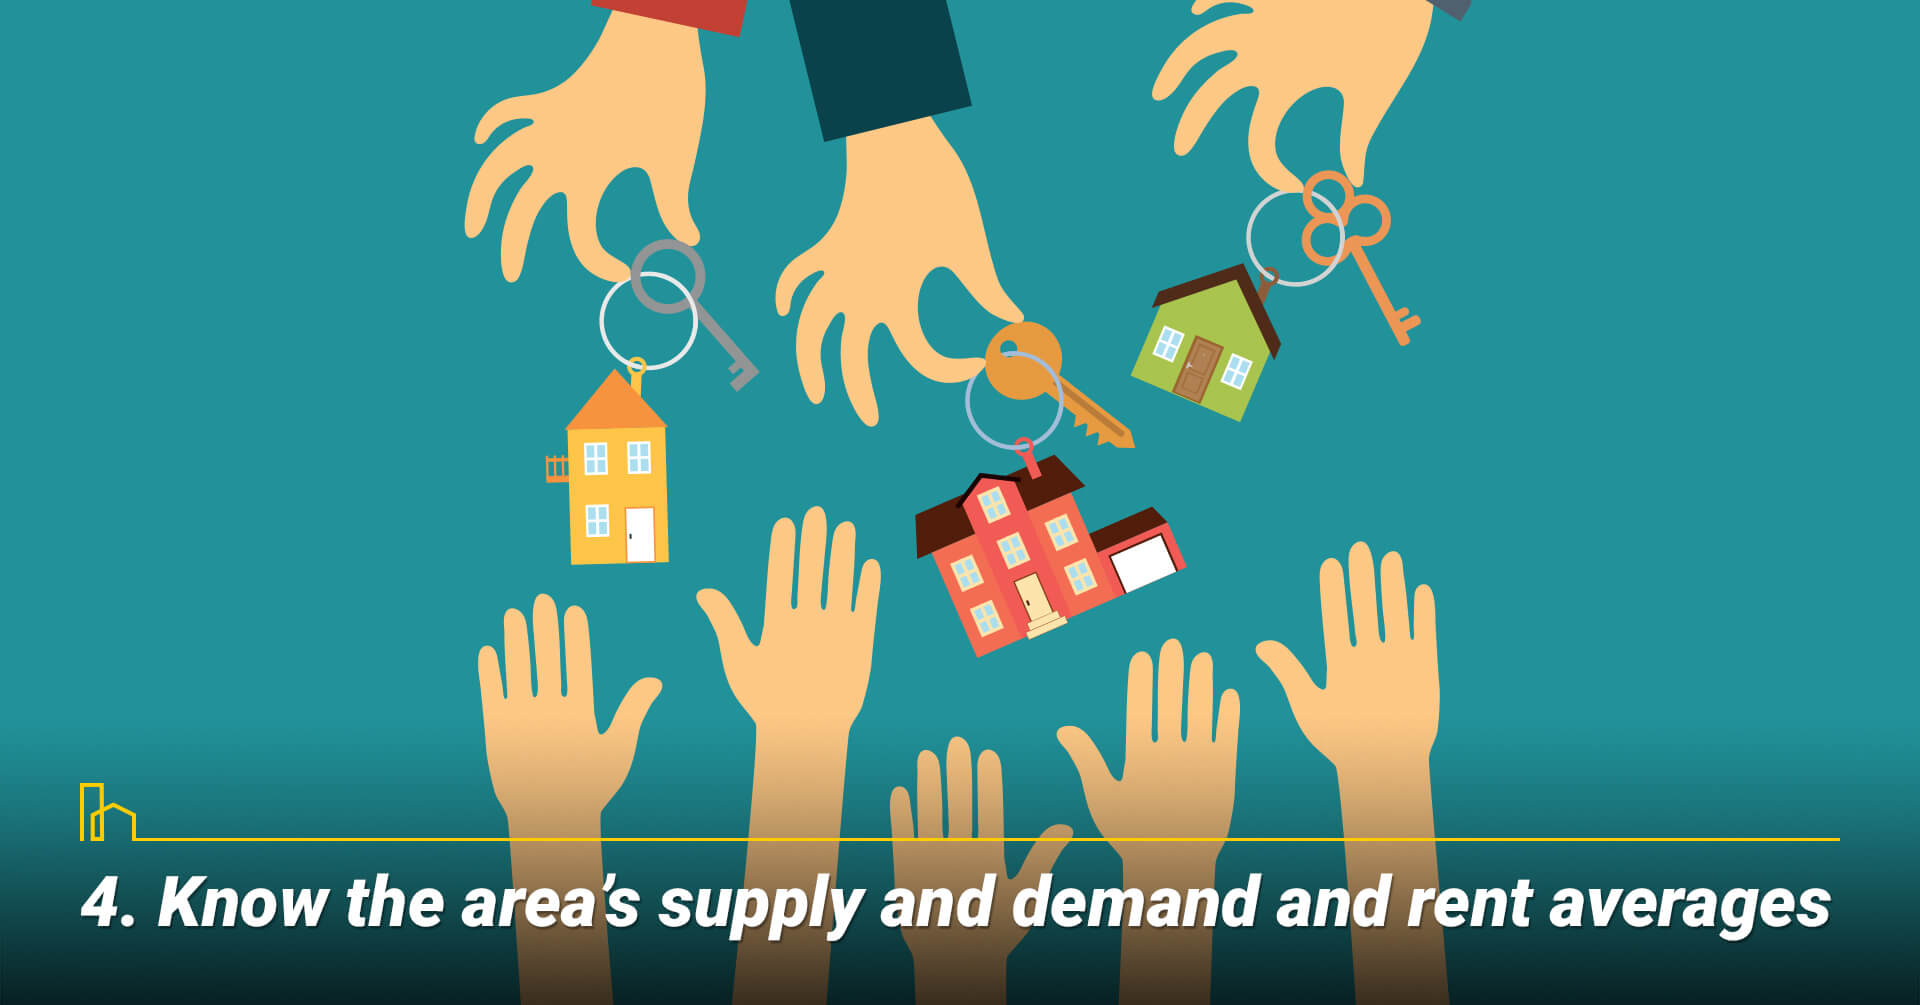 Know the area's supply and demand and rent averages